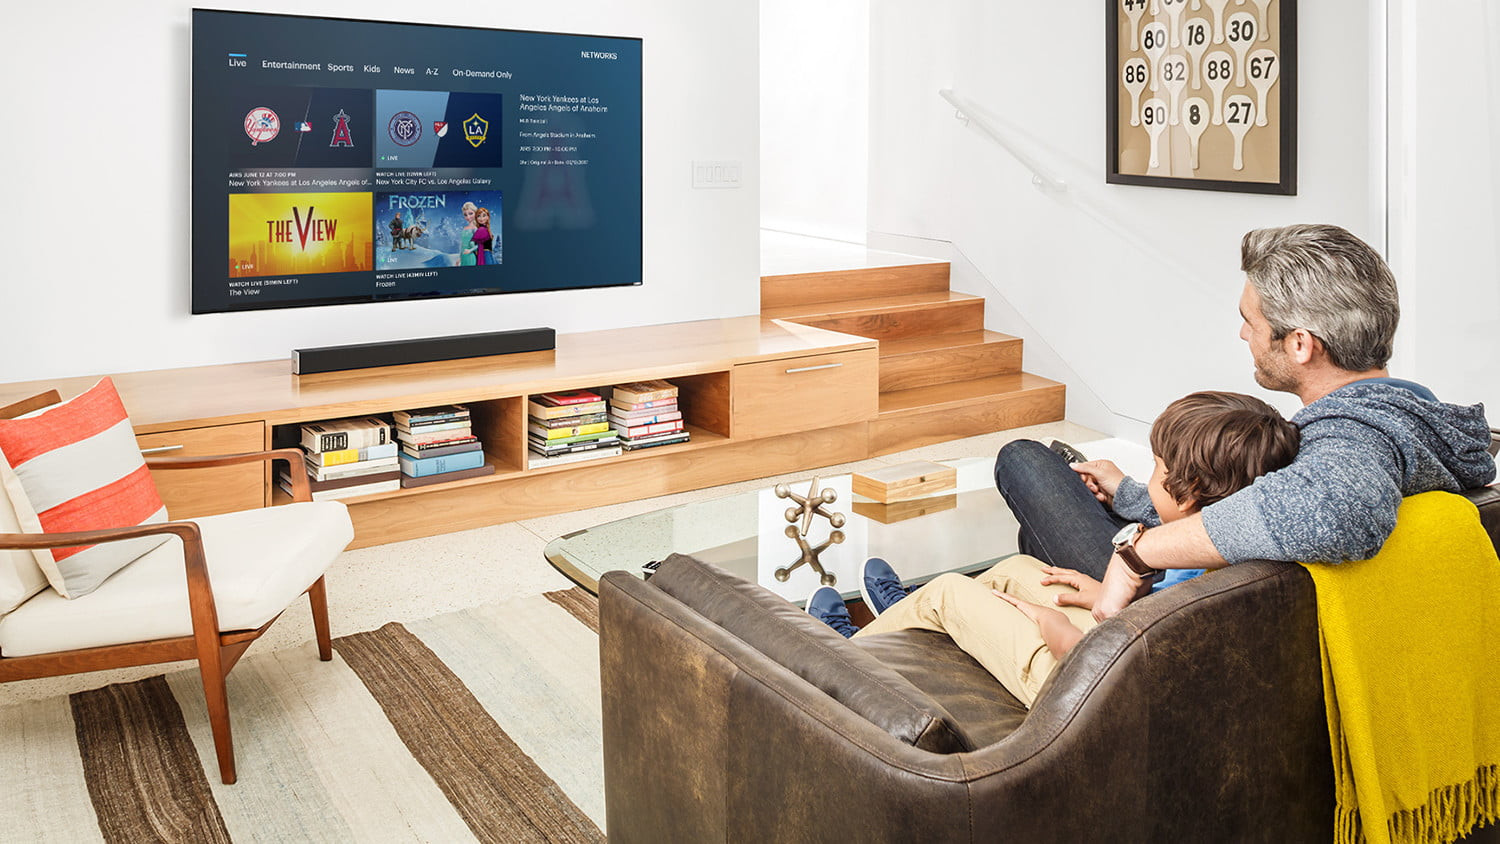 installing a hardwood floor youtube of the best live tv streaming services playstation vue hulu sling tv with the best live tv streaming services playstation vue hulu sling tv digital trends